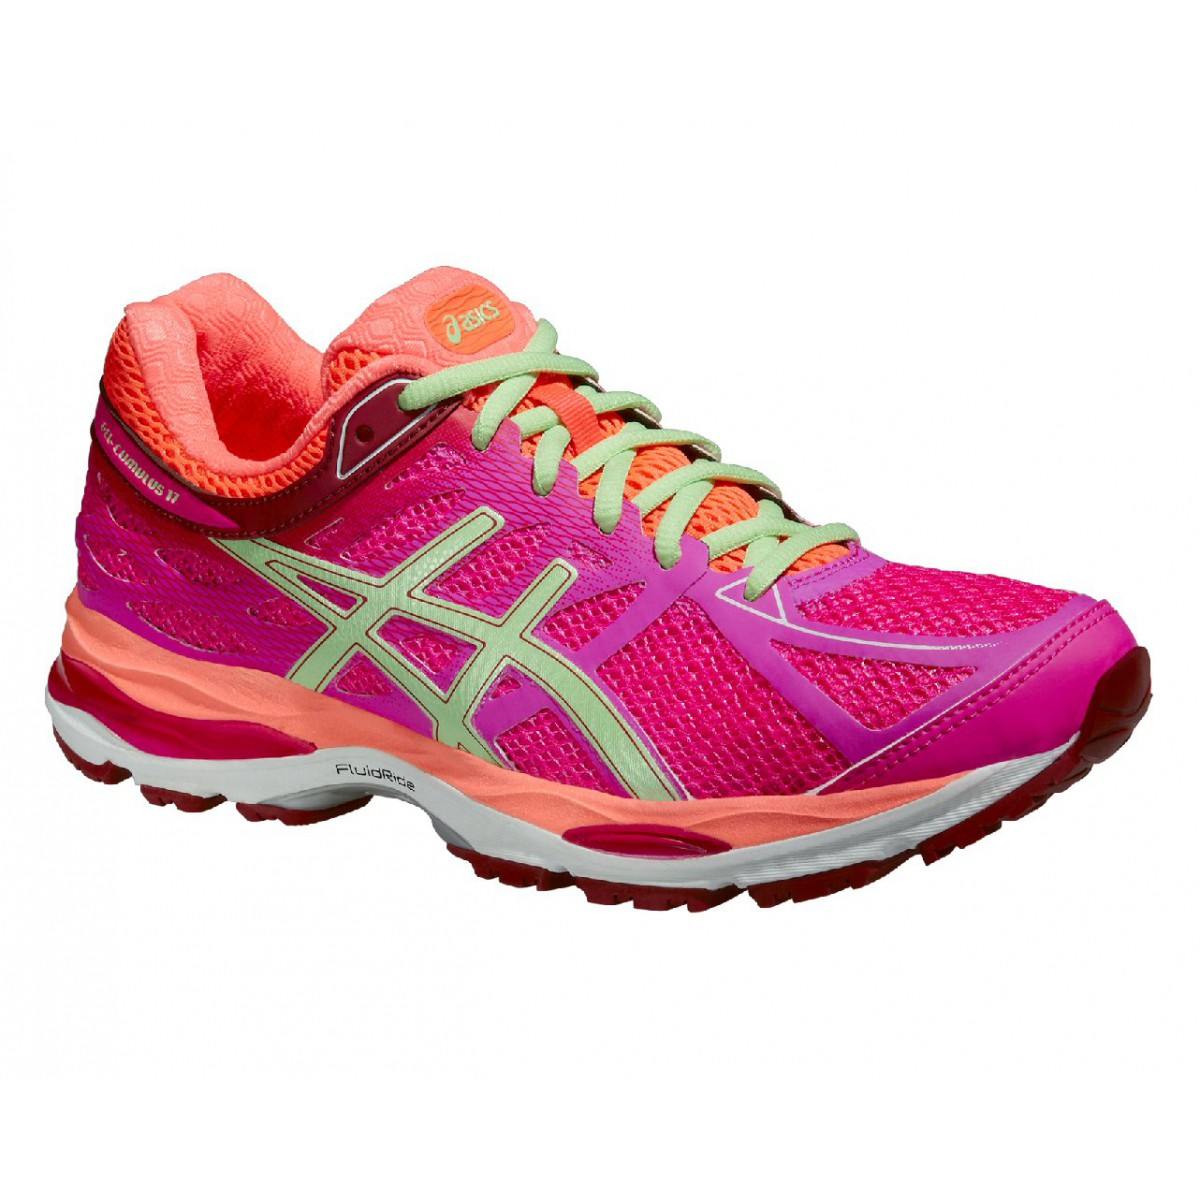 asics gel cumulus 17 2a 2015 pink laufschuhe damen. Black Bedroom Furniture Sets. Home Design Ideas